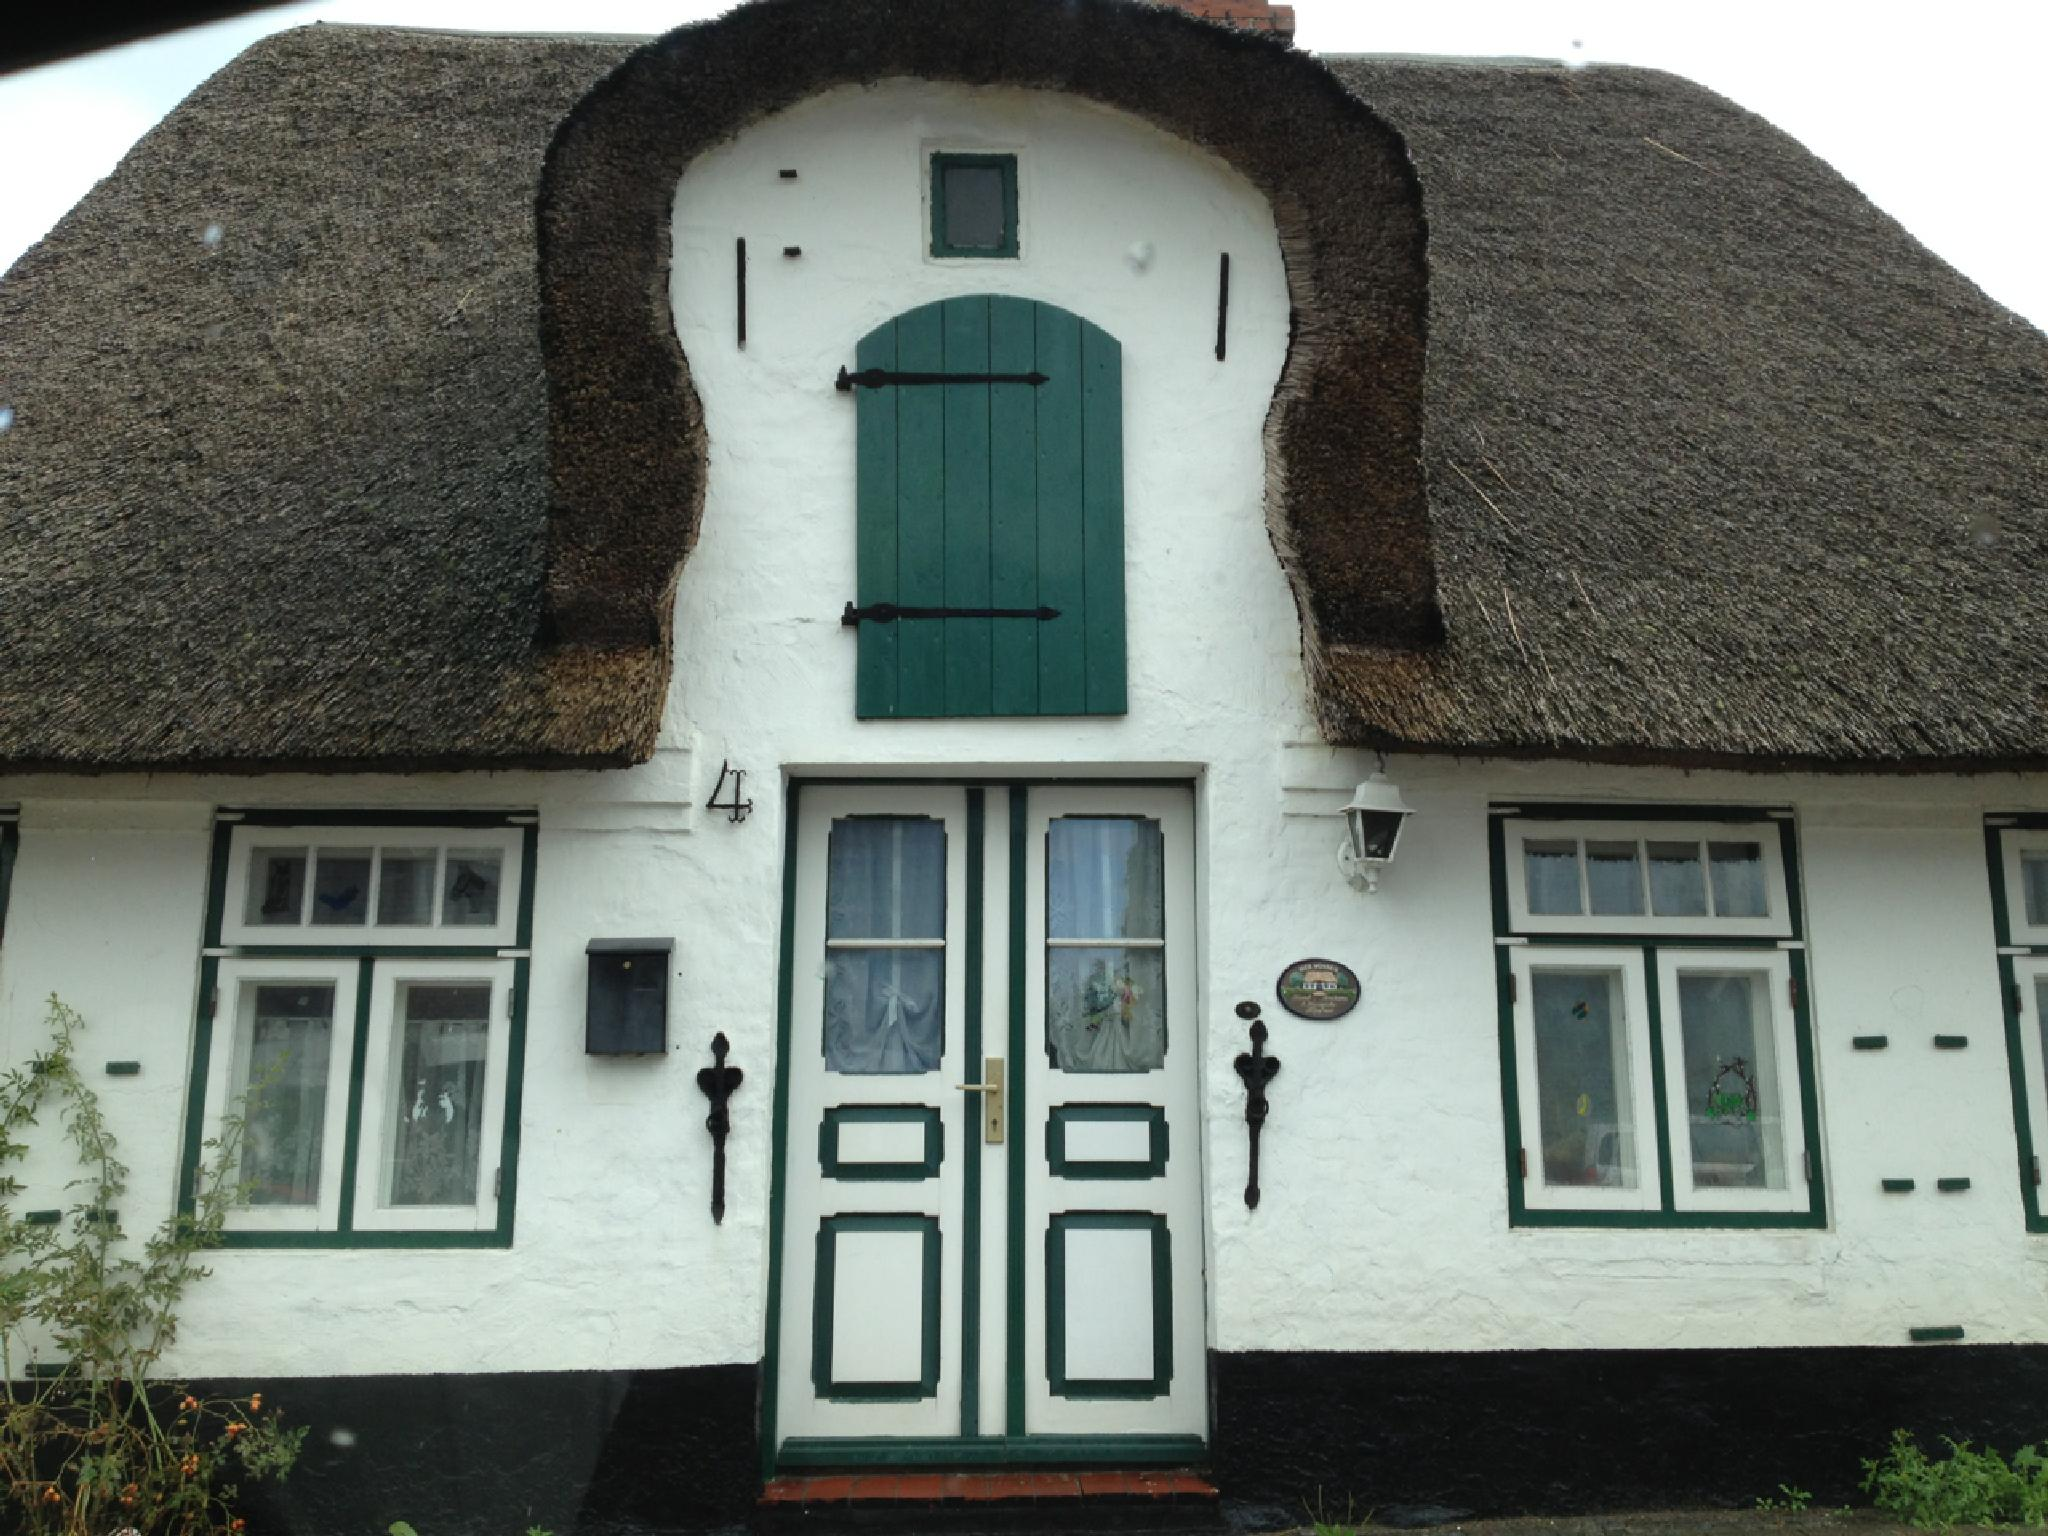 North Friesian Cottage by Katy Haecker